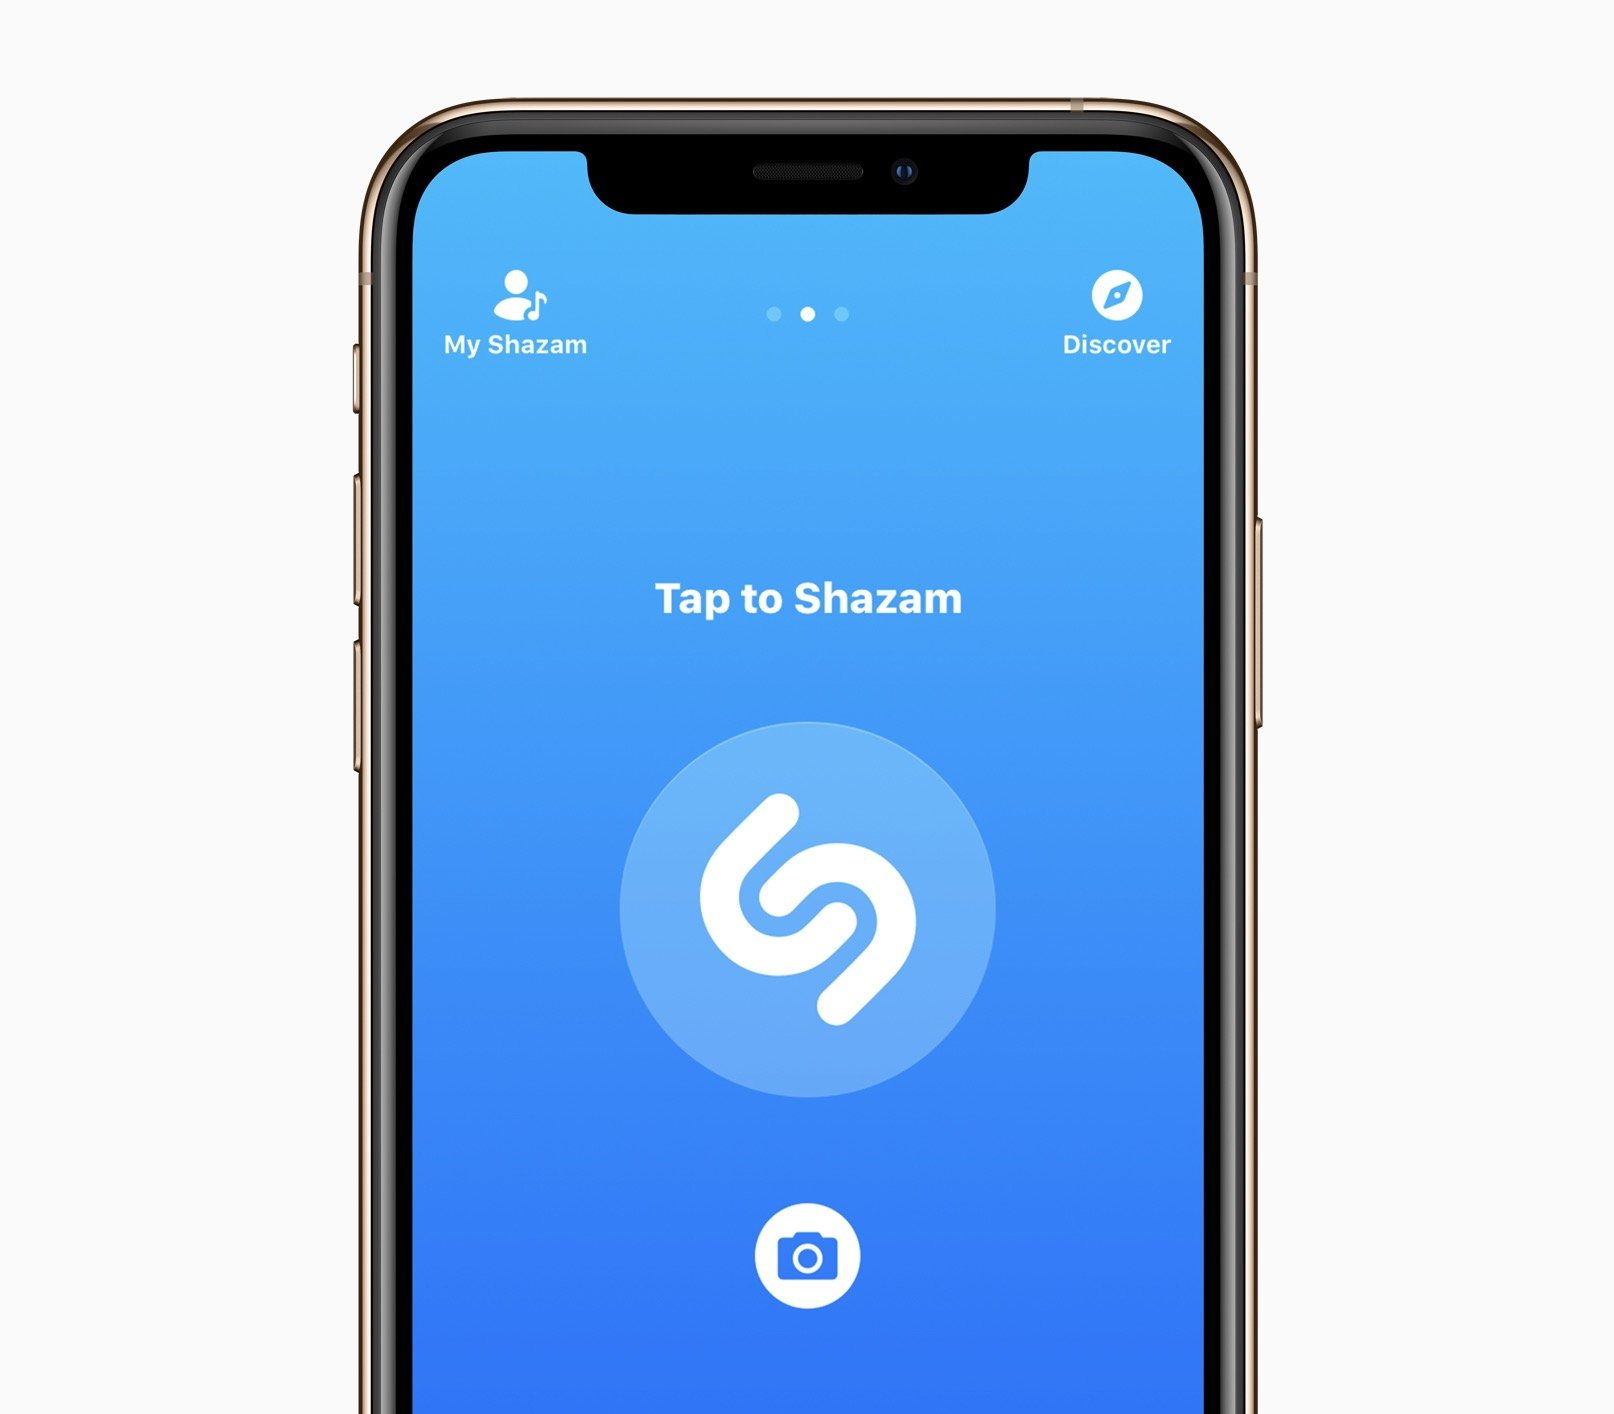 Apple's buyout of Shazam: 5 reasons it could change music streaming